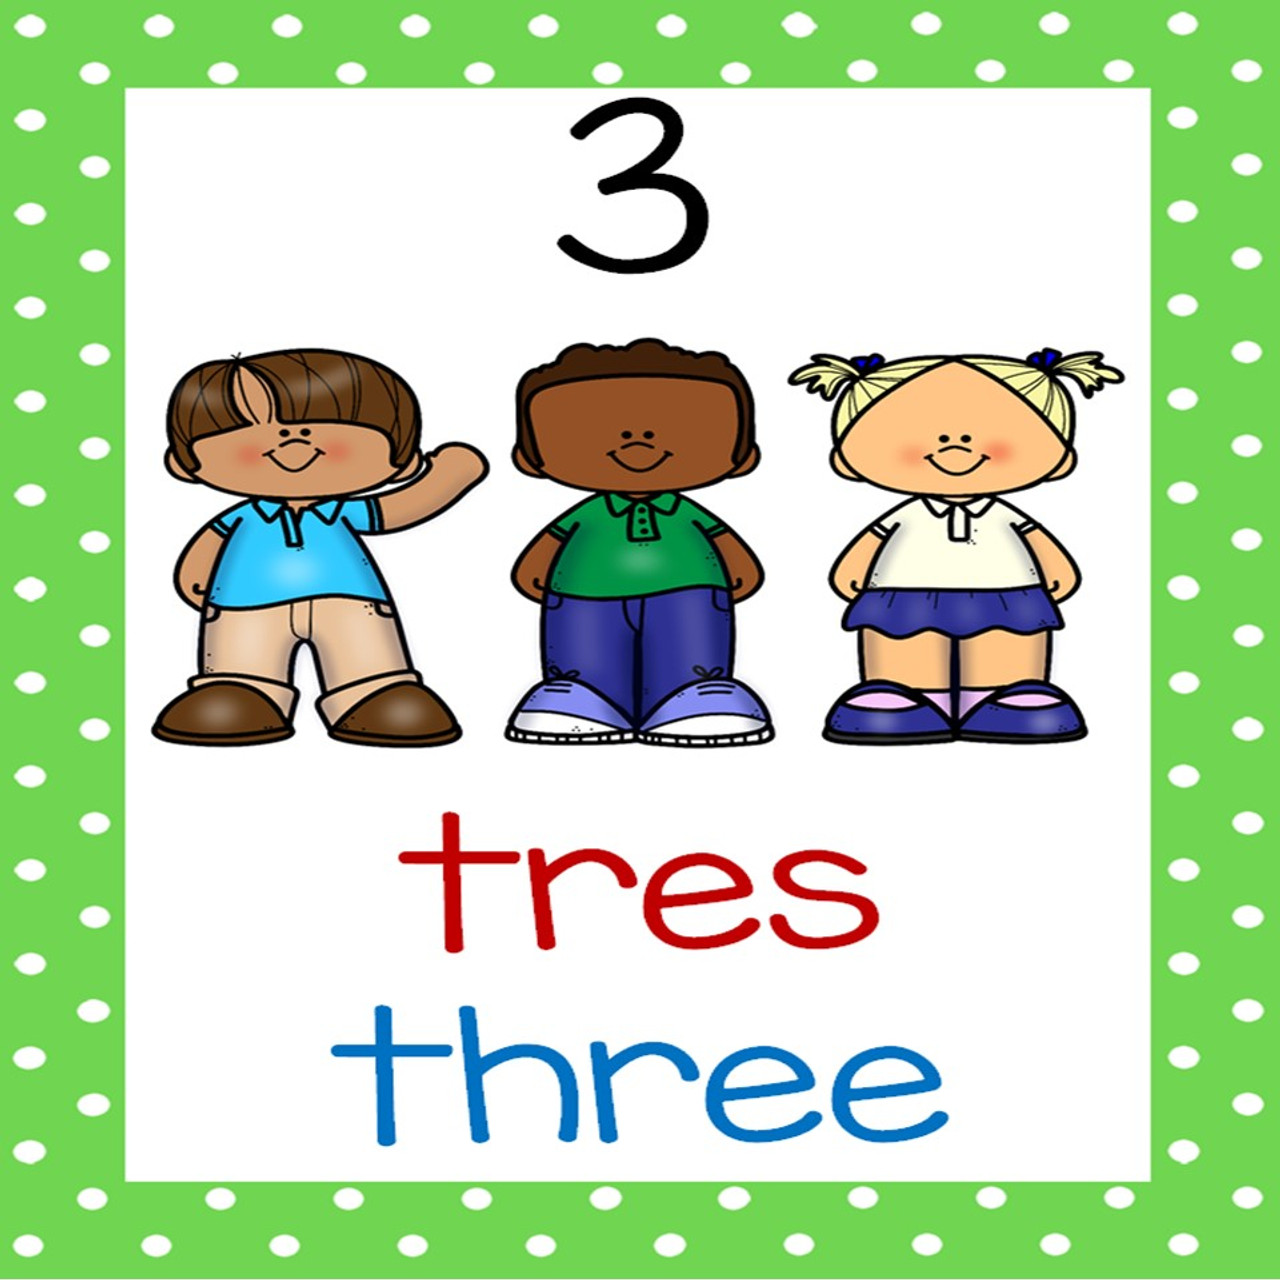 School Clipart Number Wall 1-20- Two sizes to choose: 4.97 x 7.5 inches and 10 x 7.5 inches. These number cards are a great way to reinforce number recognition and object-number correspondence.